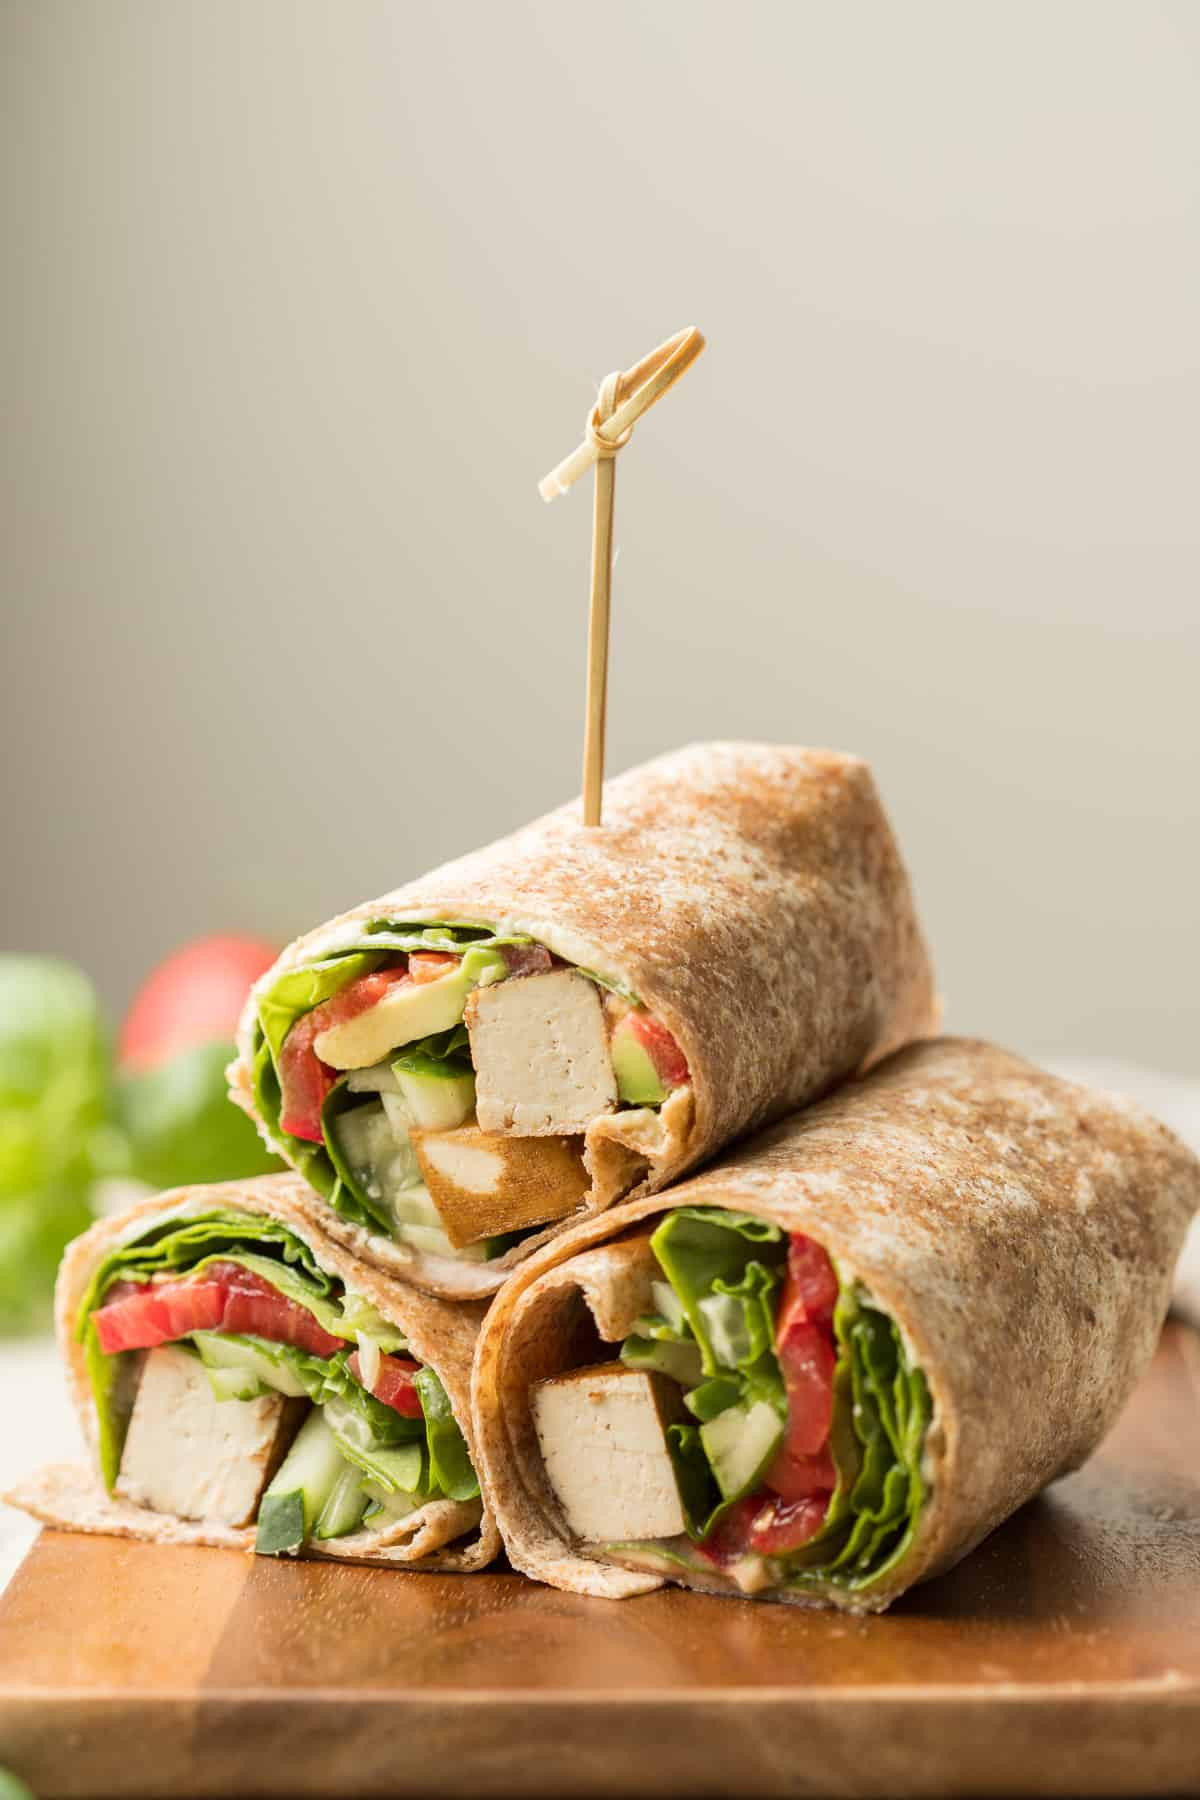 Three Vegan Wrap Halves Stacked in a Triangle